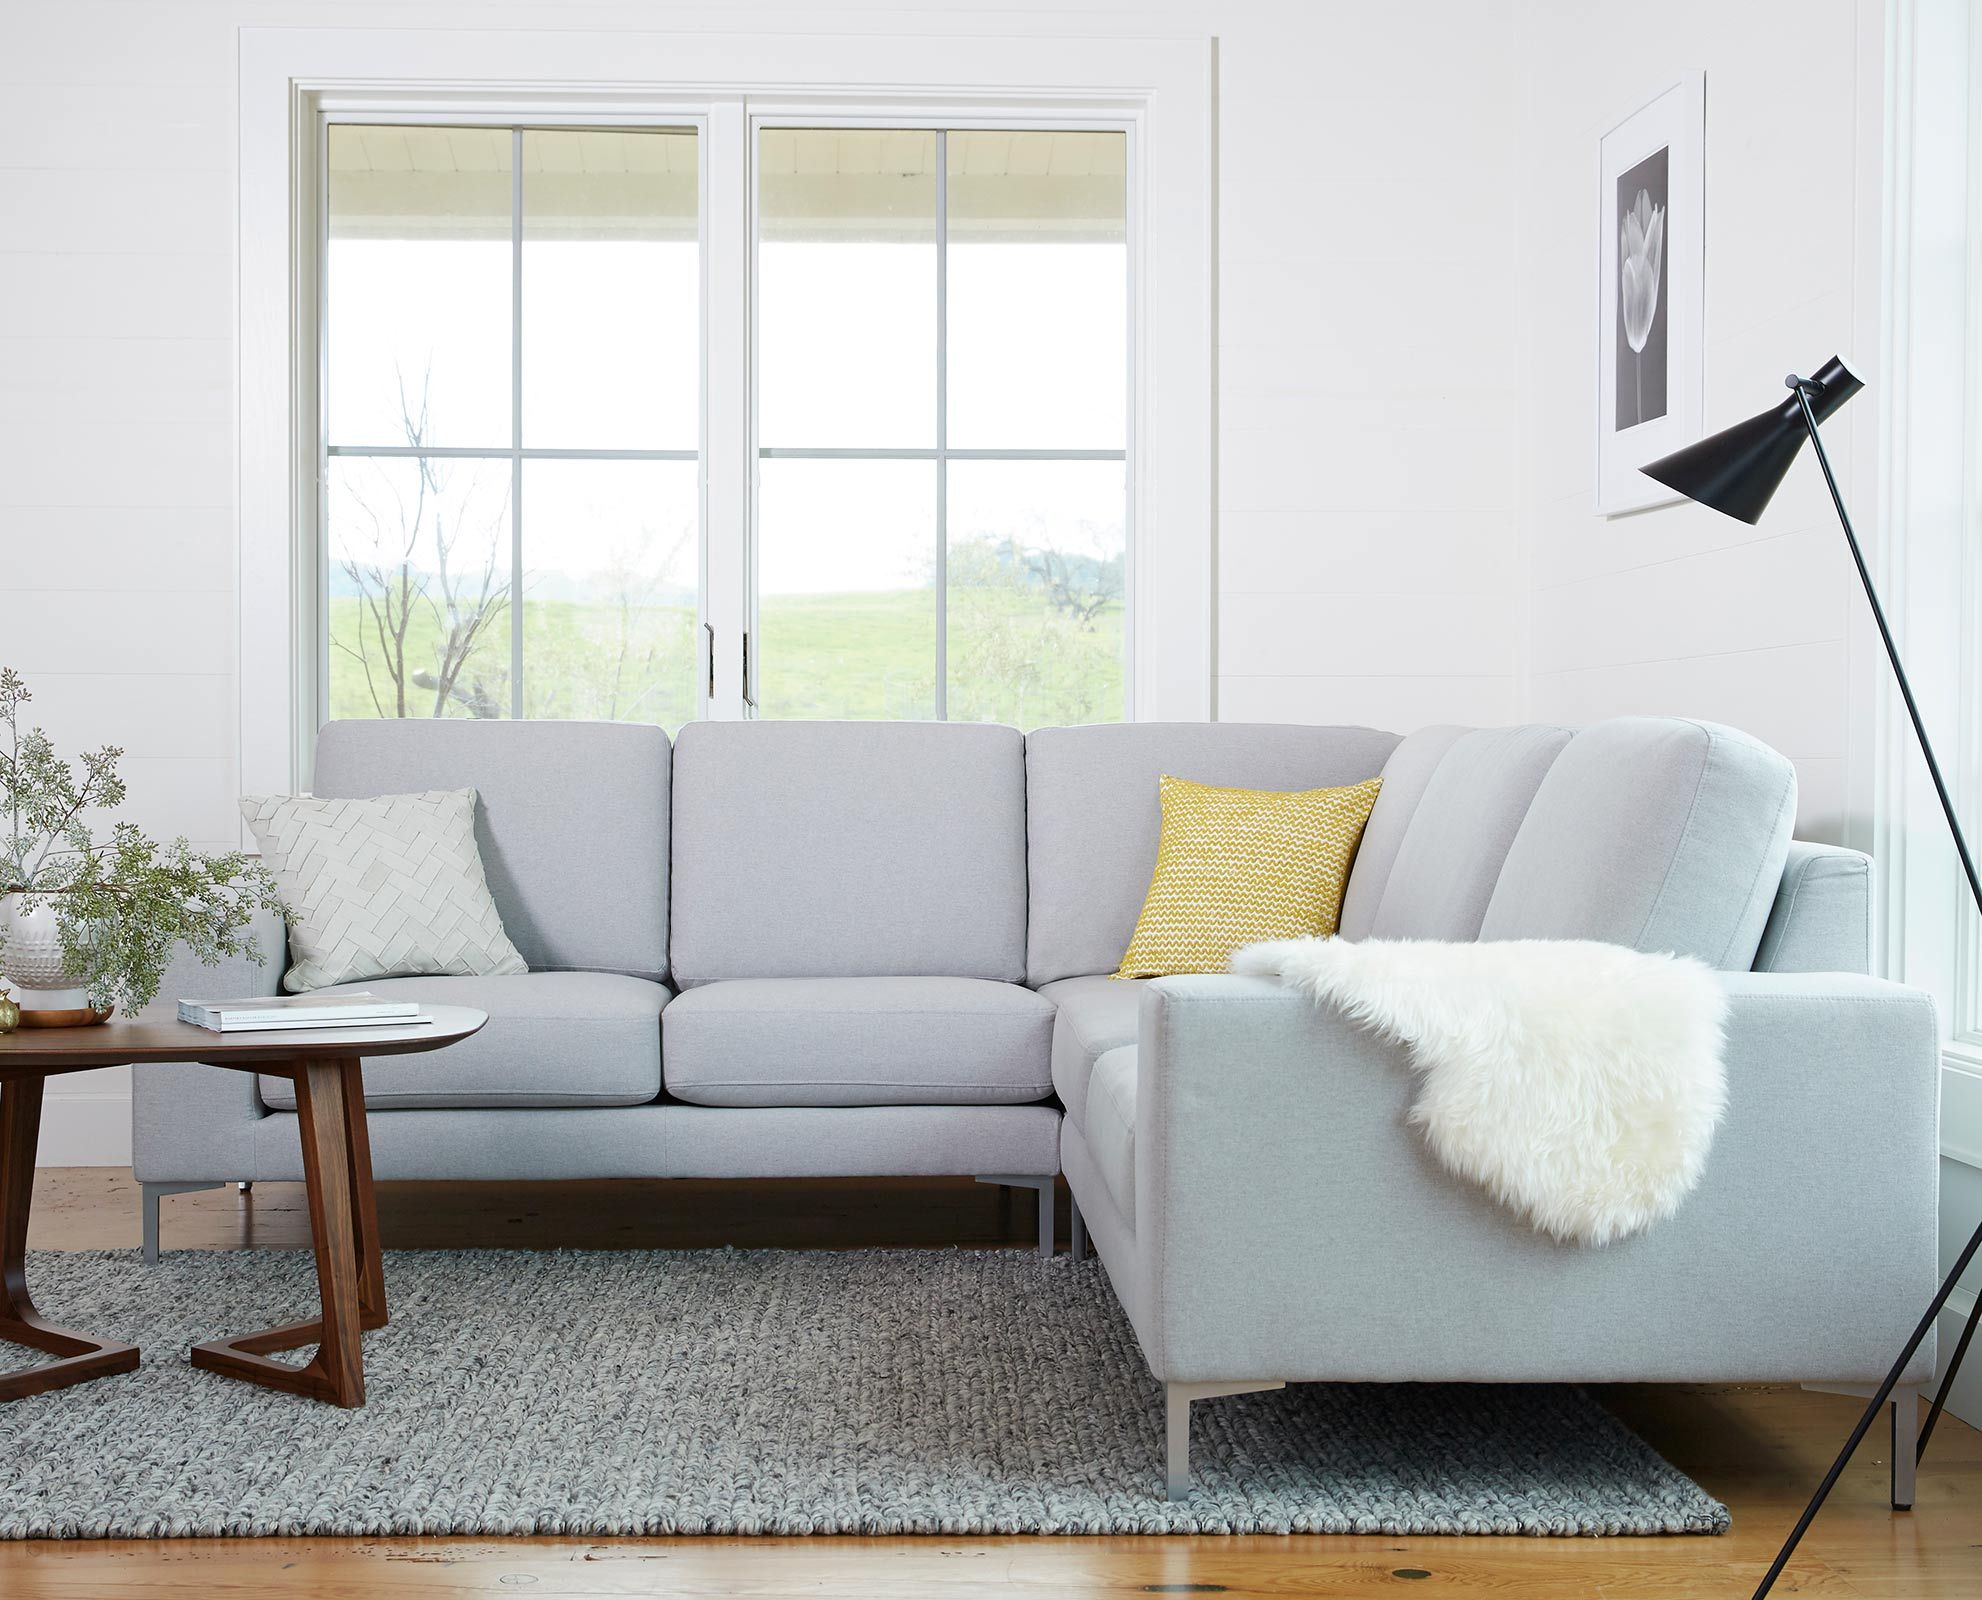 The Olaf Sectional Sofa from Scandinavian Designs - Make your ...